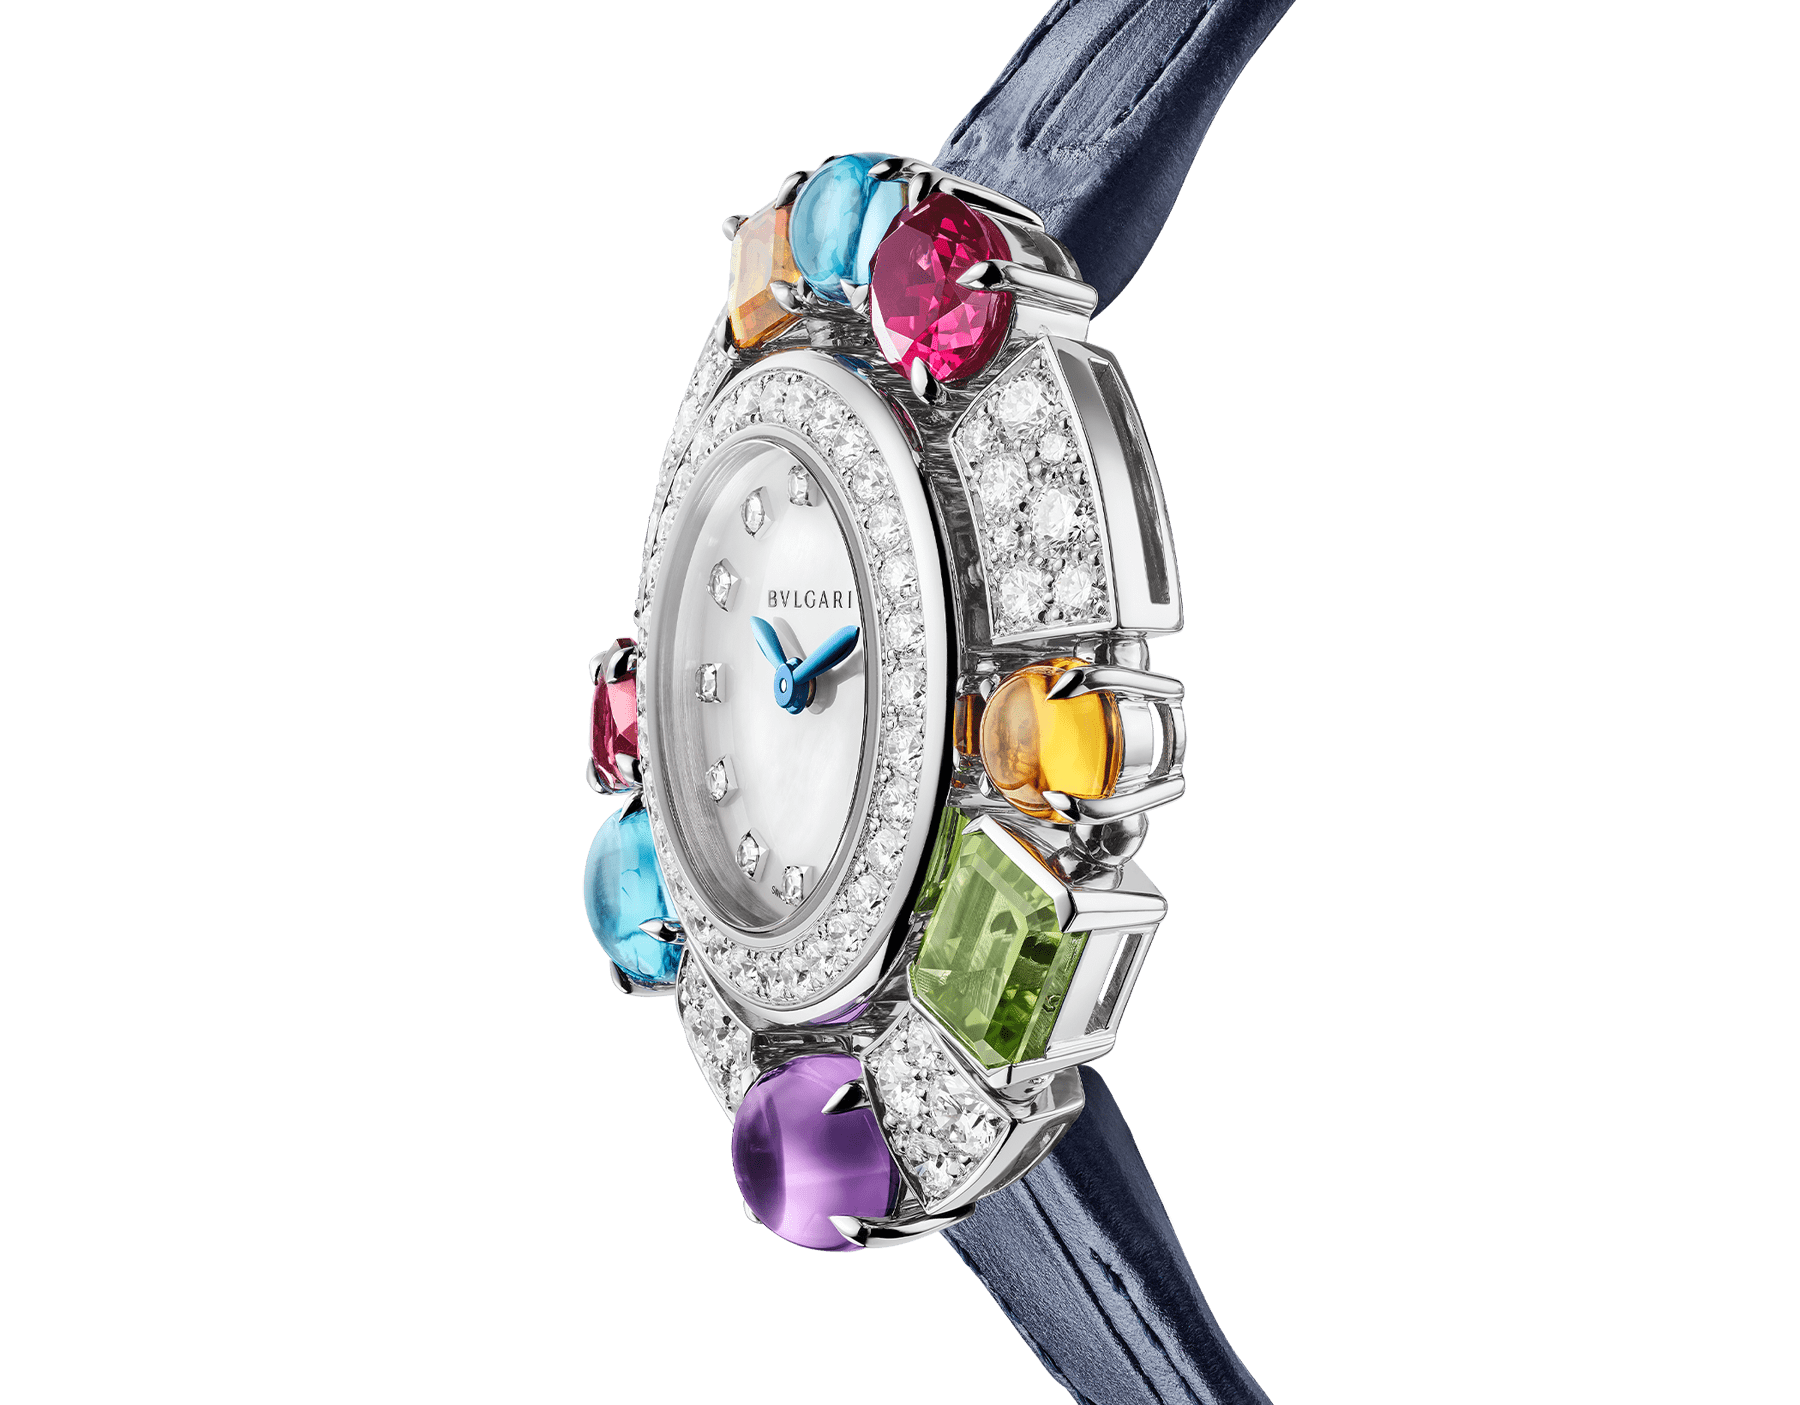 Allegra High Jewellery watch with 18 kt white gold case set with brilliant-cut diamonds, two citrines, an amethyst, a peridot, two blue topazes and two rhodolite, mother-of-pearl dial, diamond indexes and blue alligator bracelet. Water resistant up to 30 metres 103499 image 2